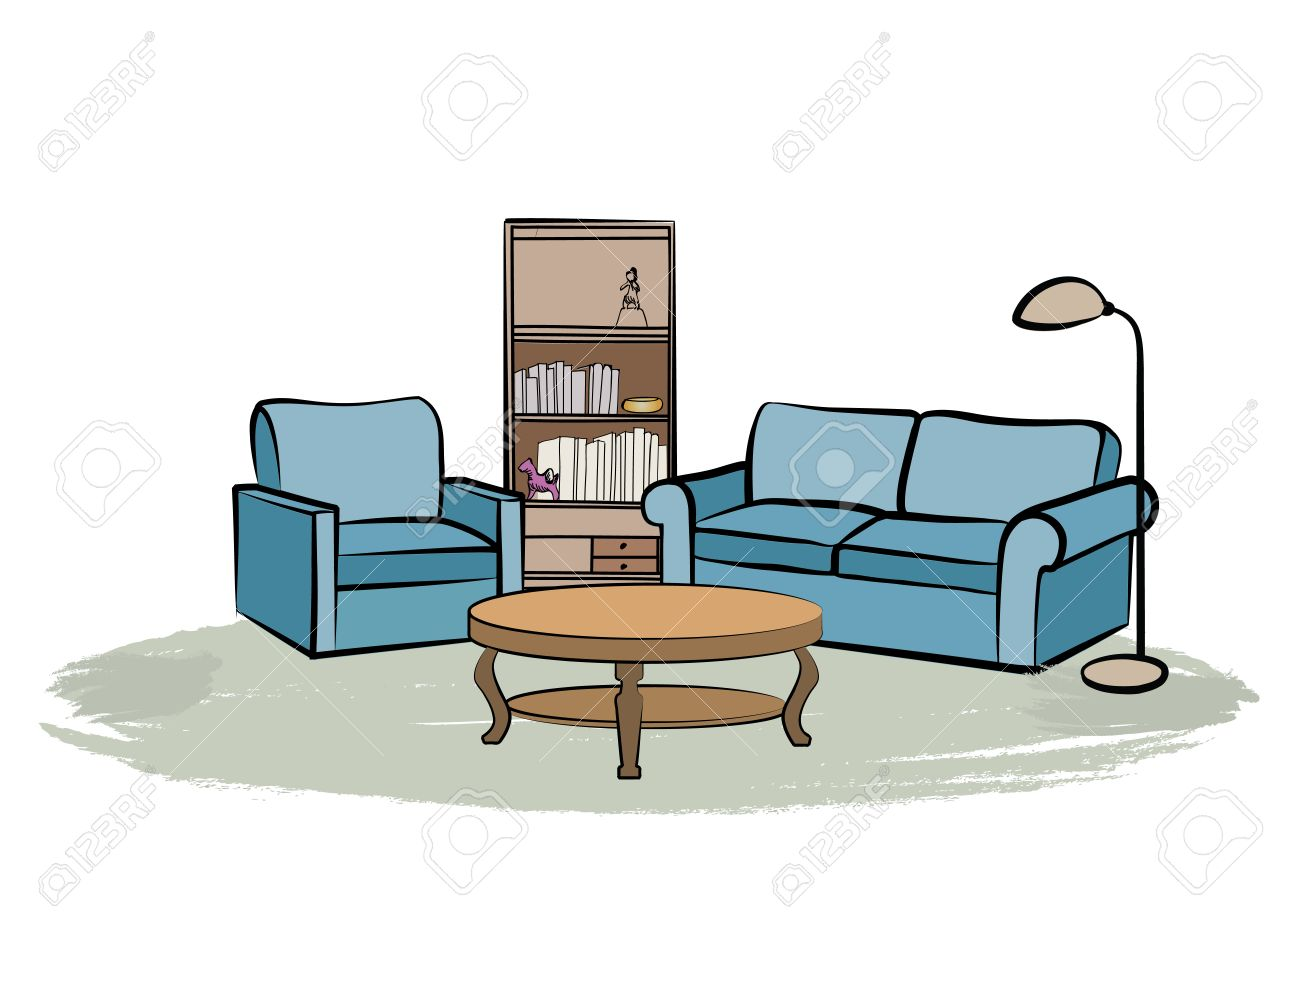 Living room drawing design - Home Interior Furniture With Sofa Armchair Table Book Shelf And Books Living